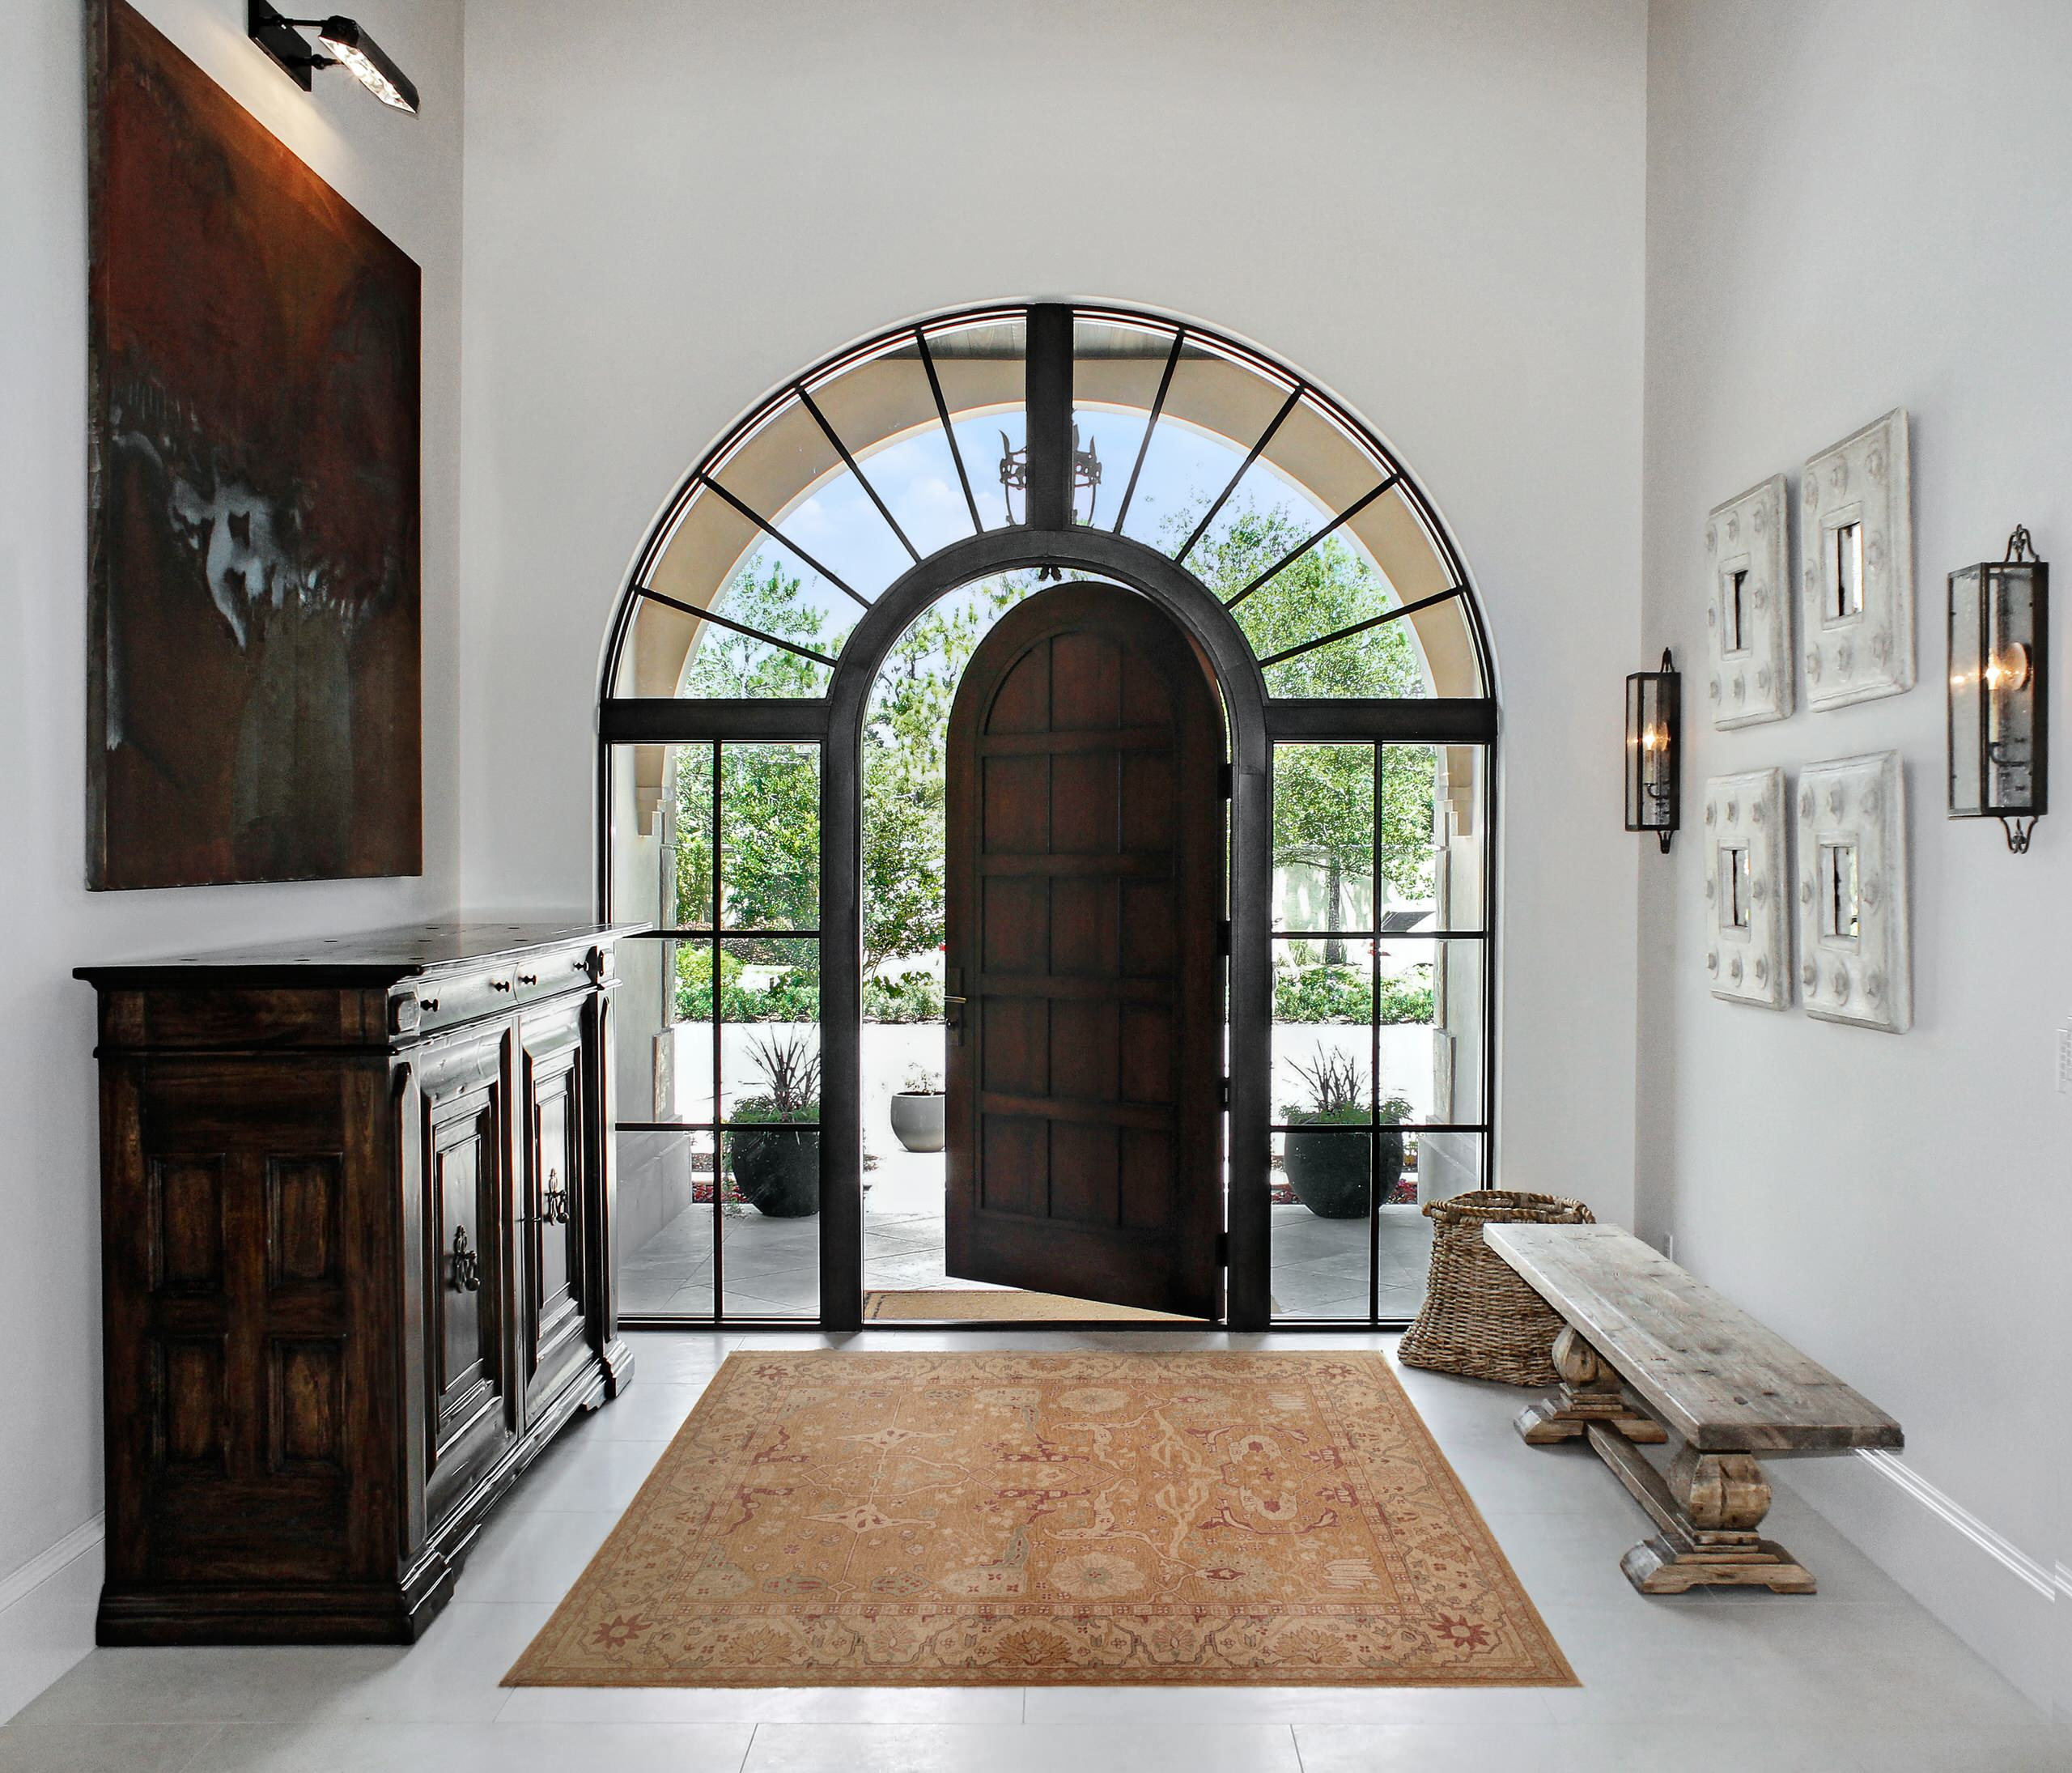 Home Design Entrance Ideas: 16 Uplifting Mediterranean Entry Hall Designs That Will